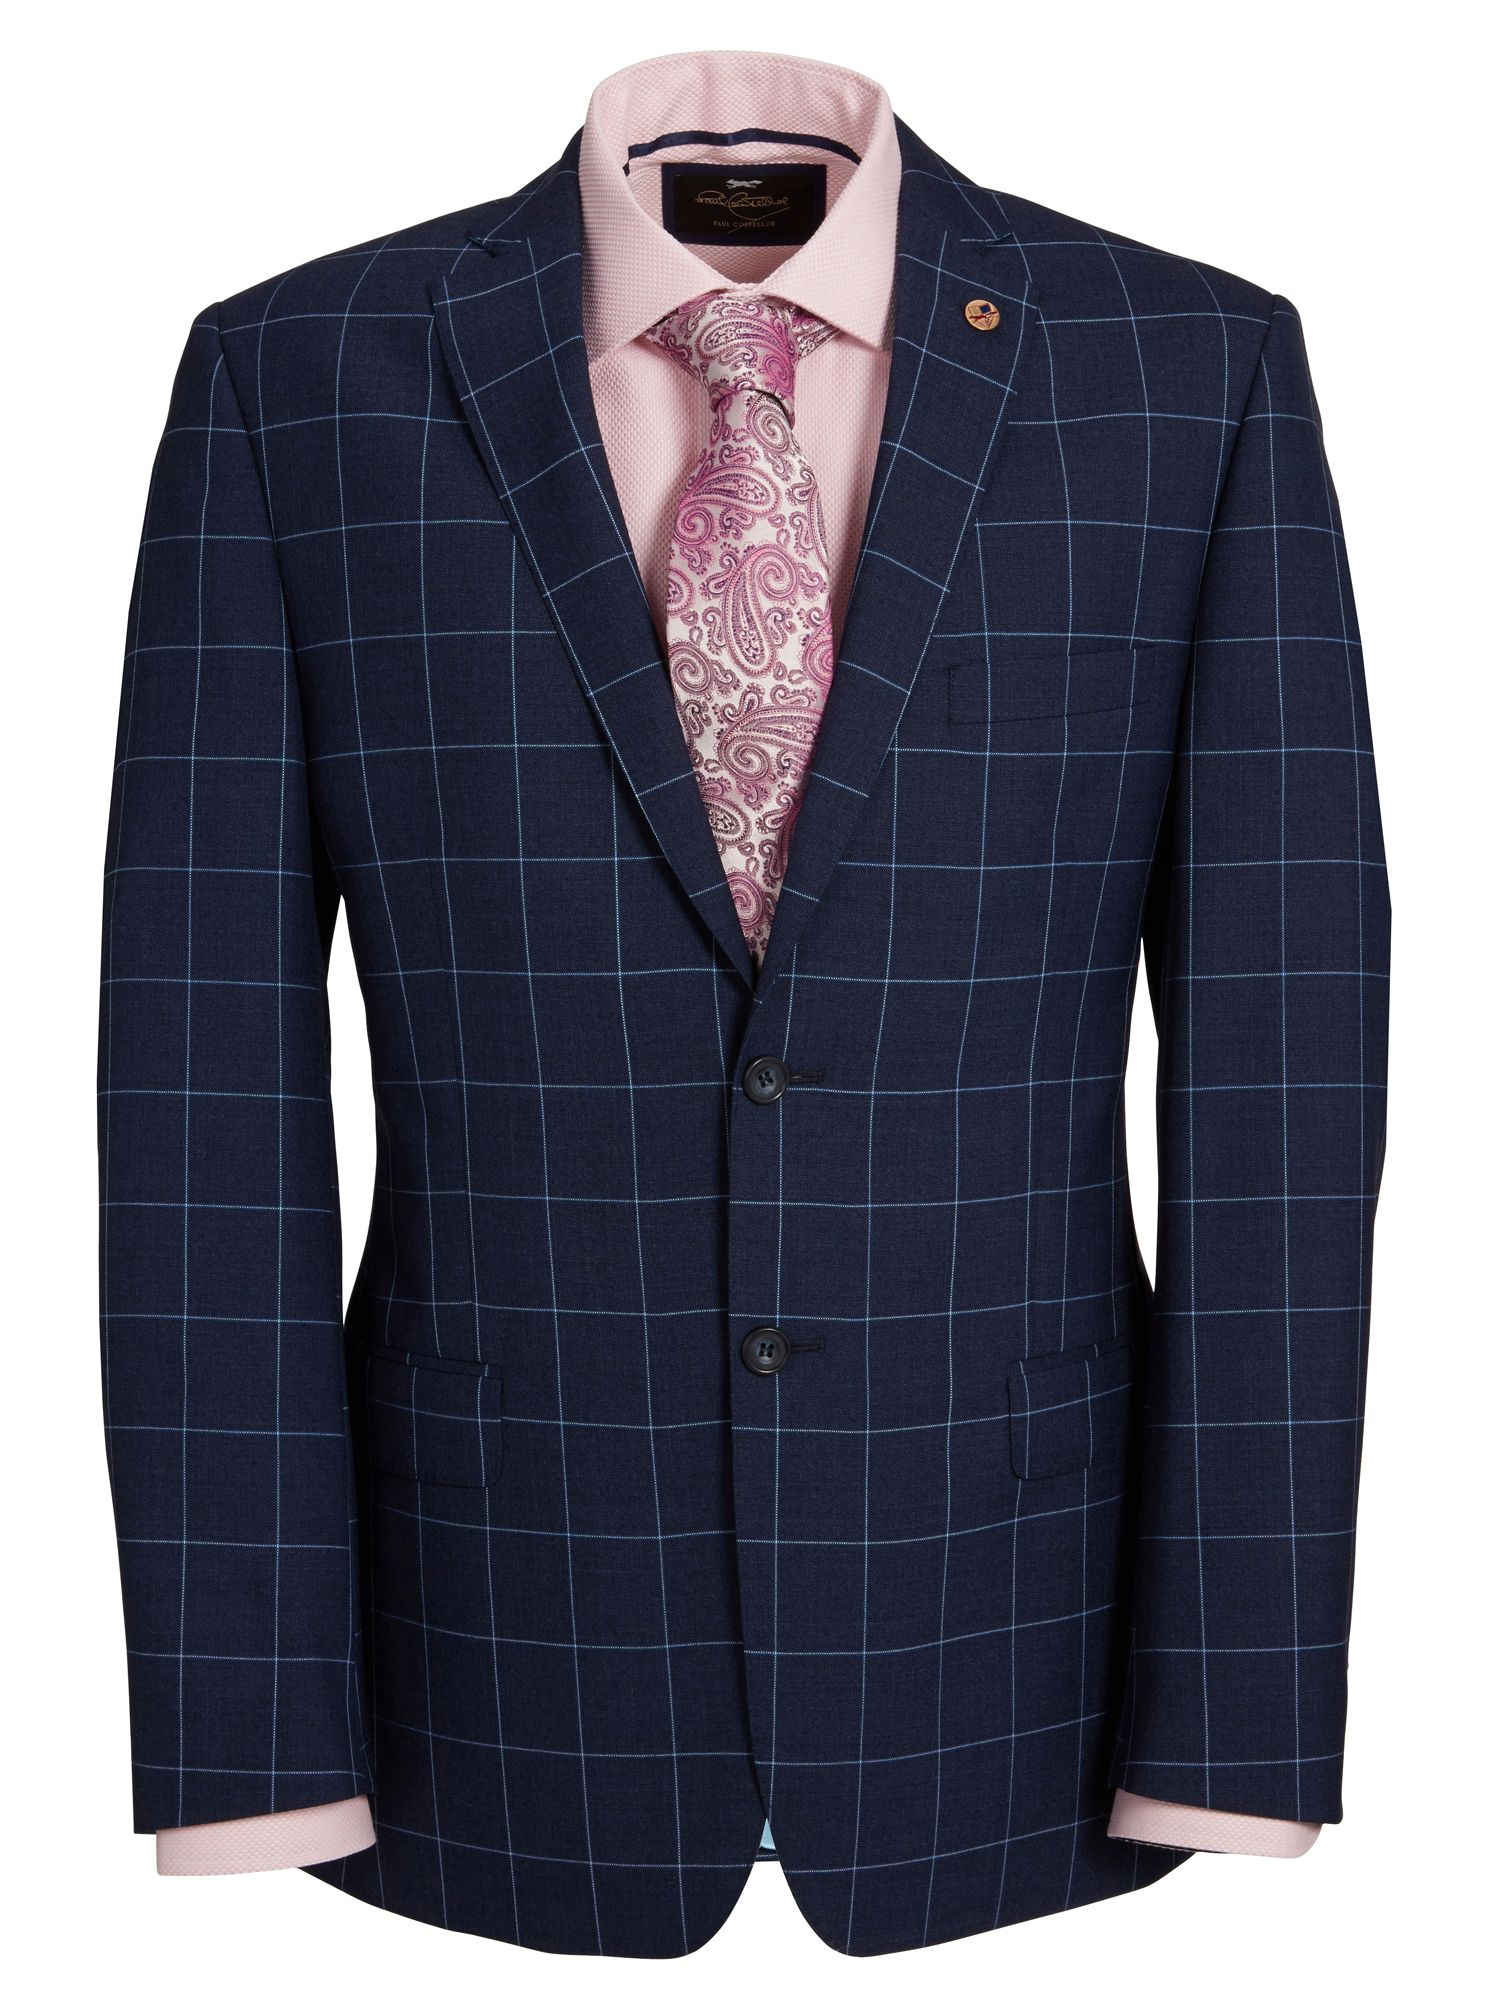 Window check single breasted suit jacket